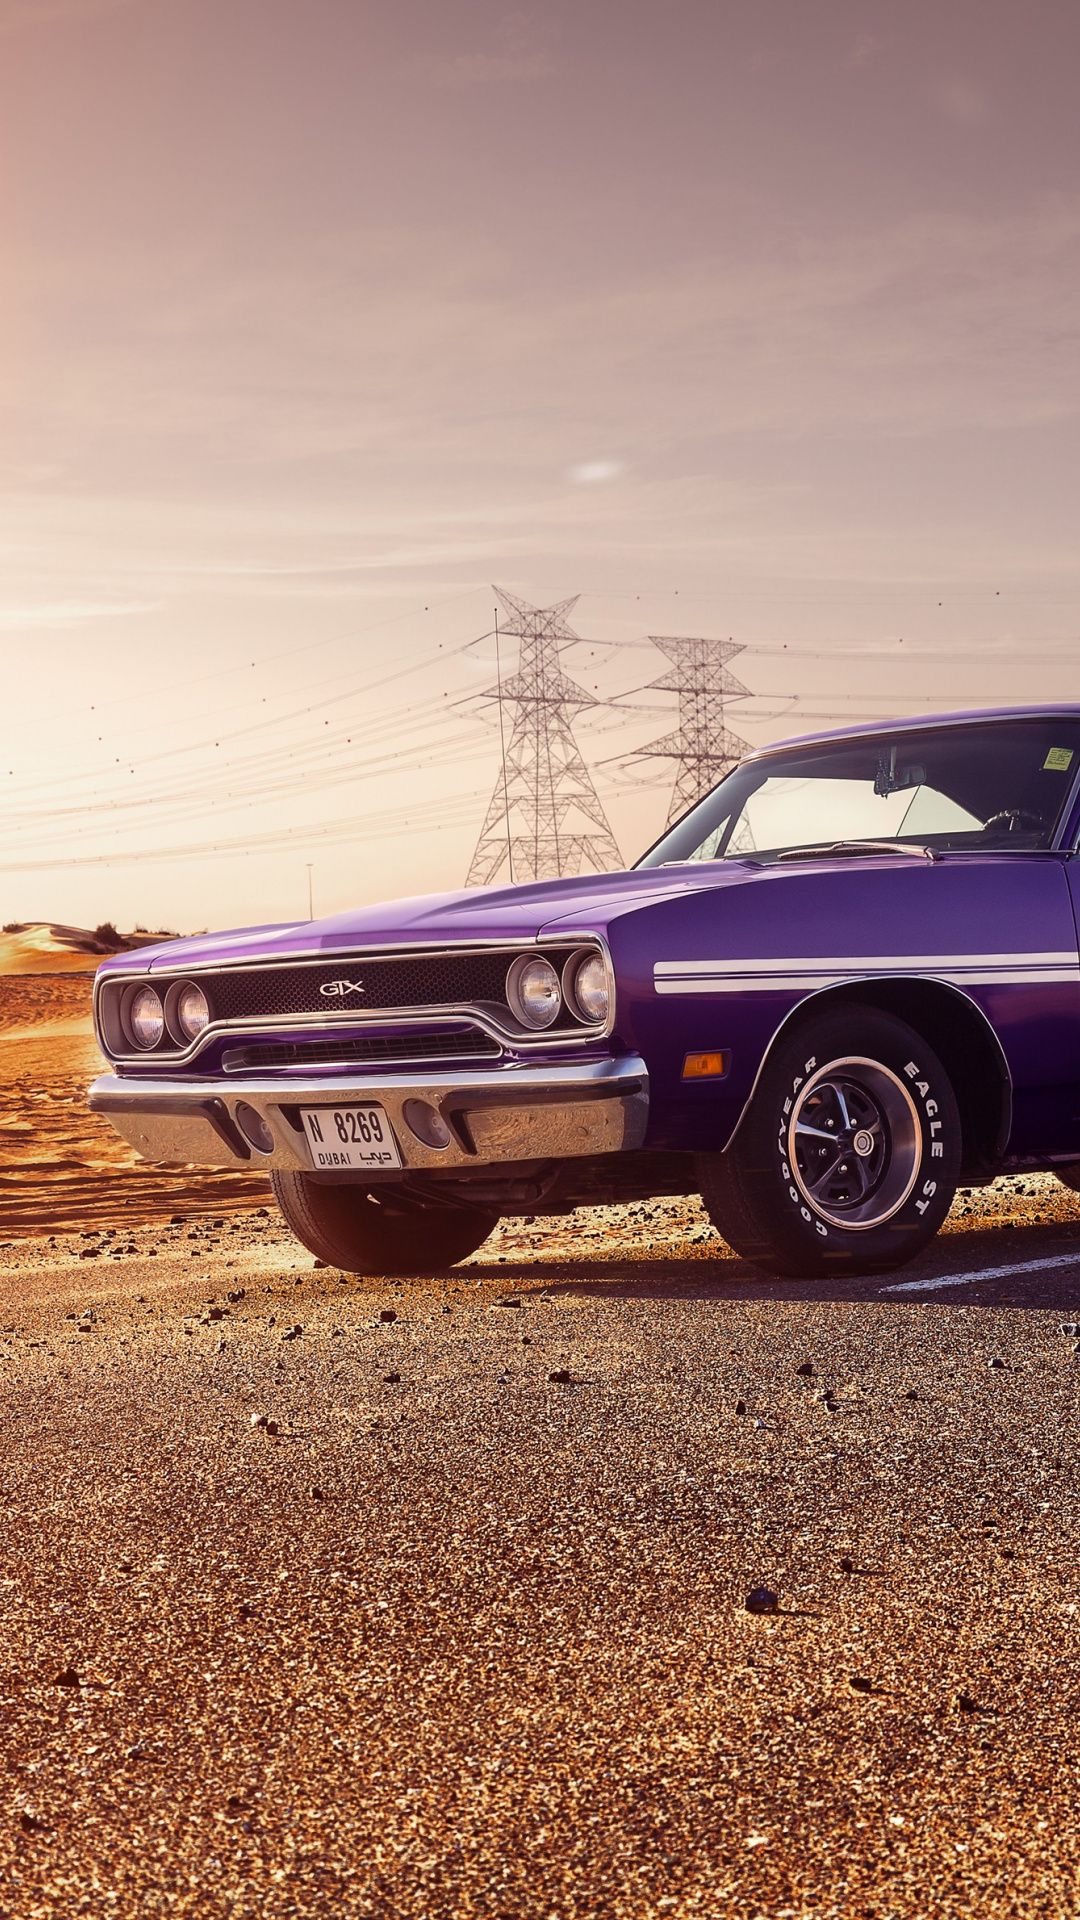 1970 Plymouth Gtx Violet Muscle Car Wallpaper Plymouth Muscle Car Klasik Arabalar Download muscle cars hd wallpapers for